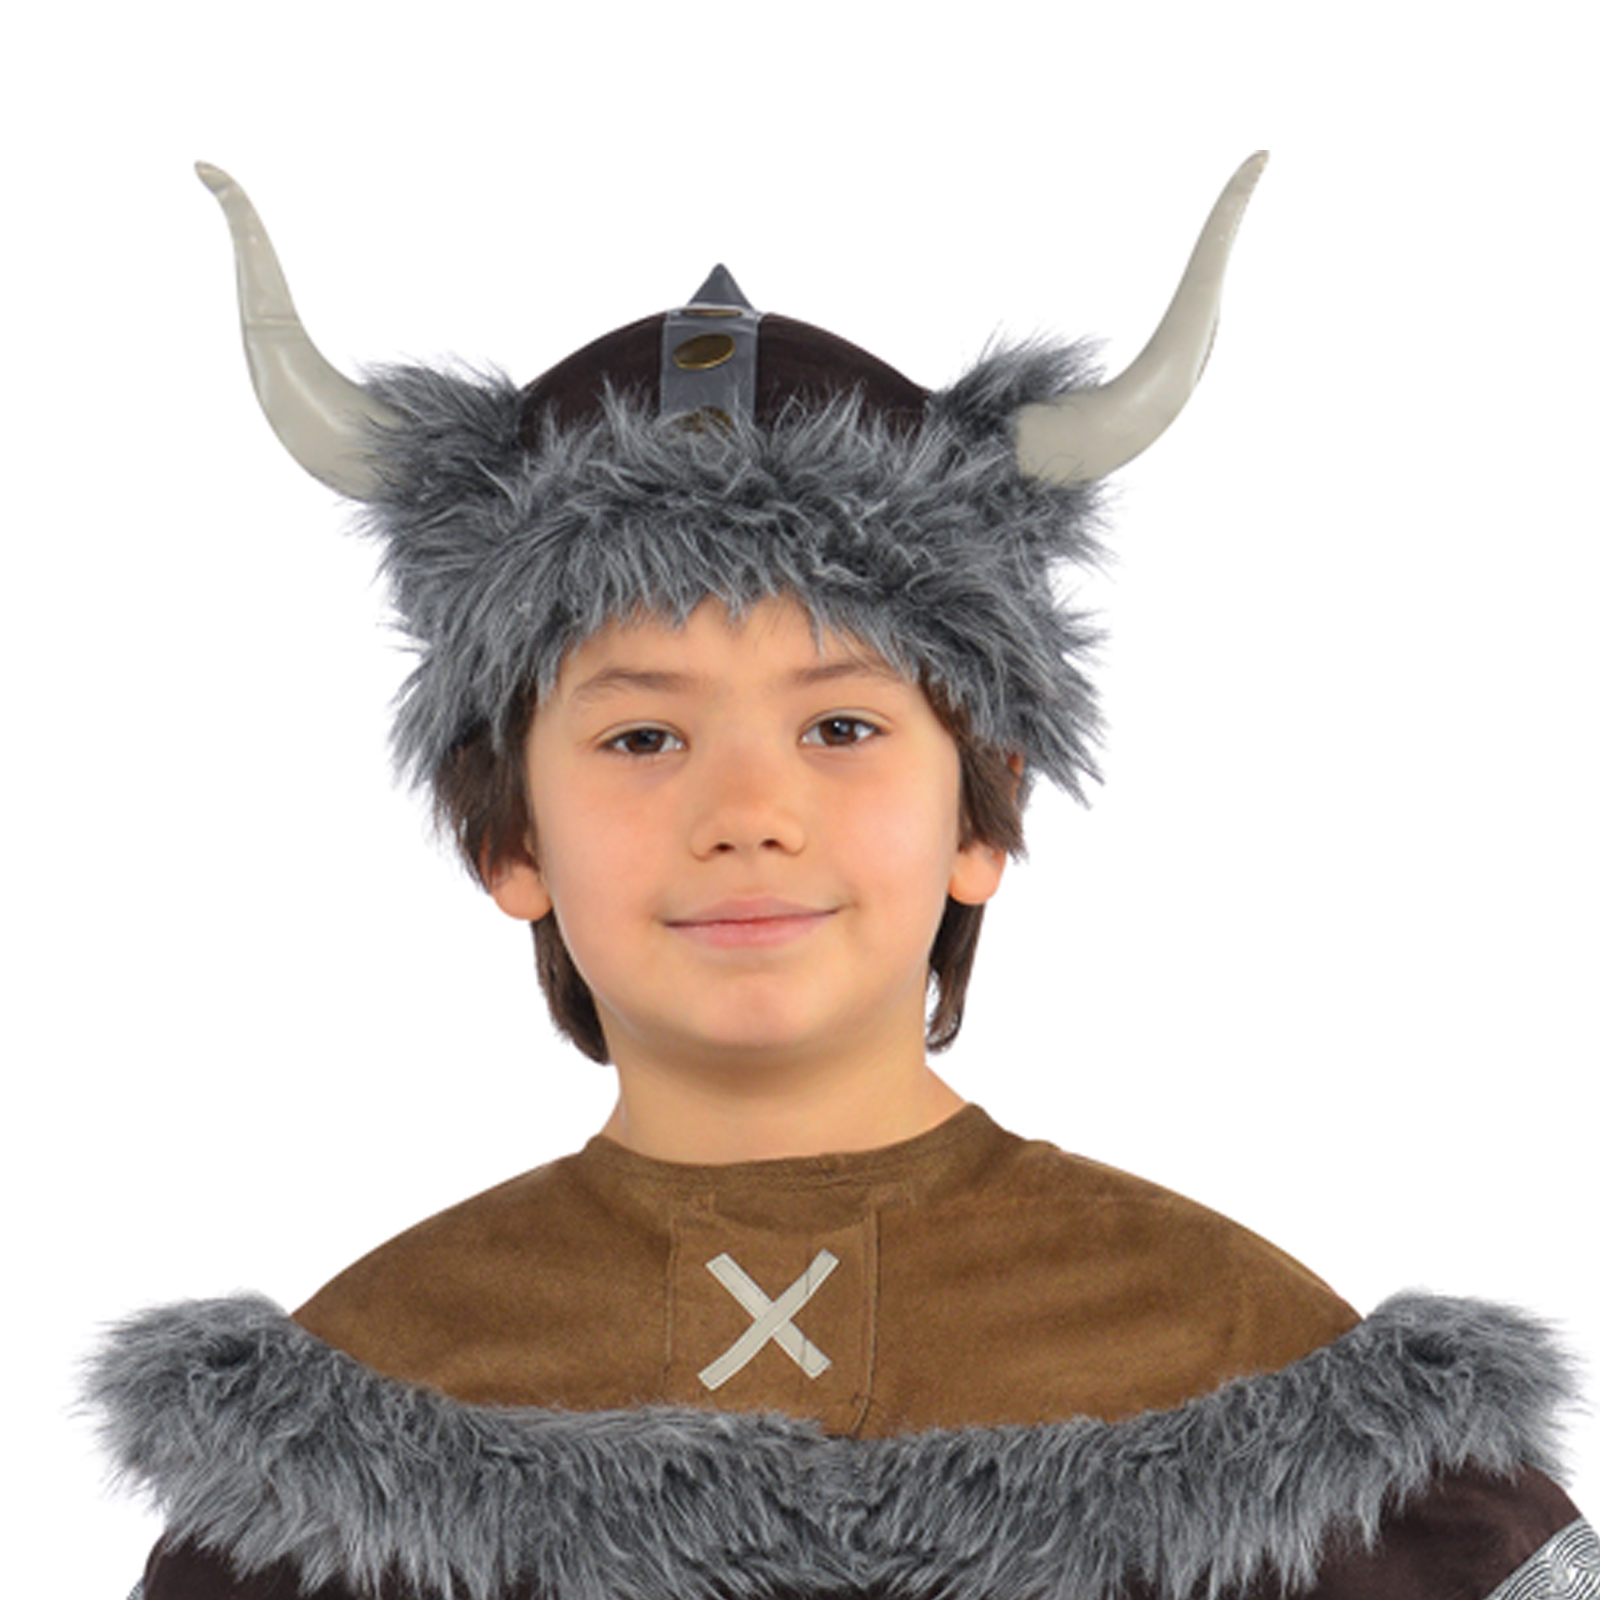 Boys Viking Warrior Fancy Dress Costume Kids Historical Medieval Saxon Outfit | eBay